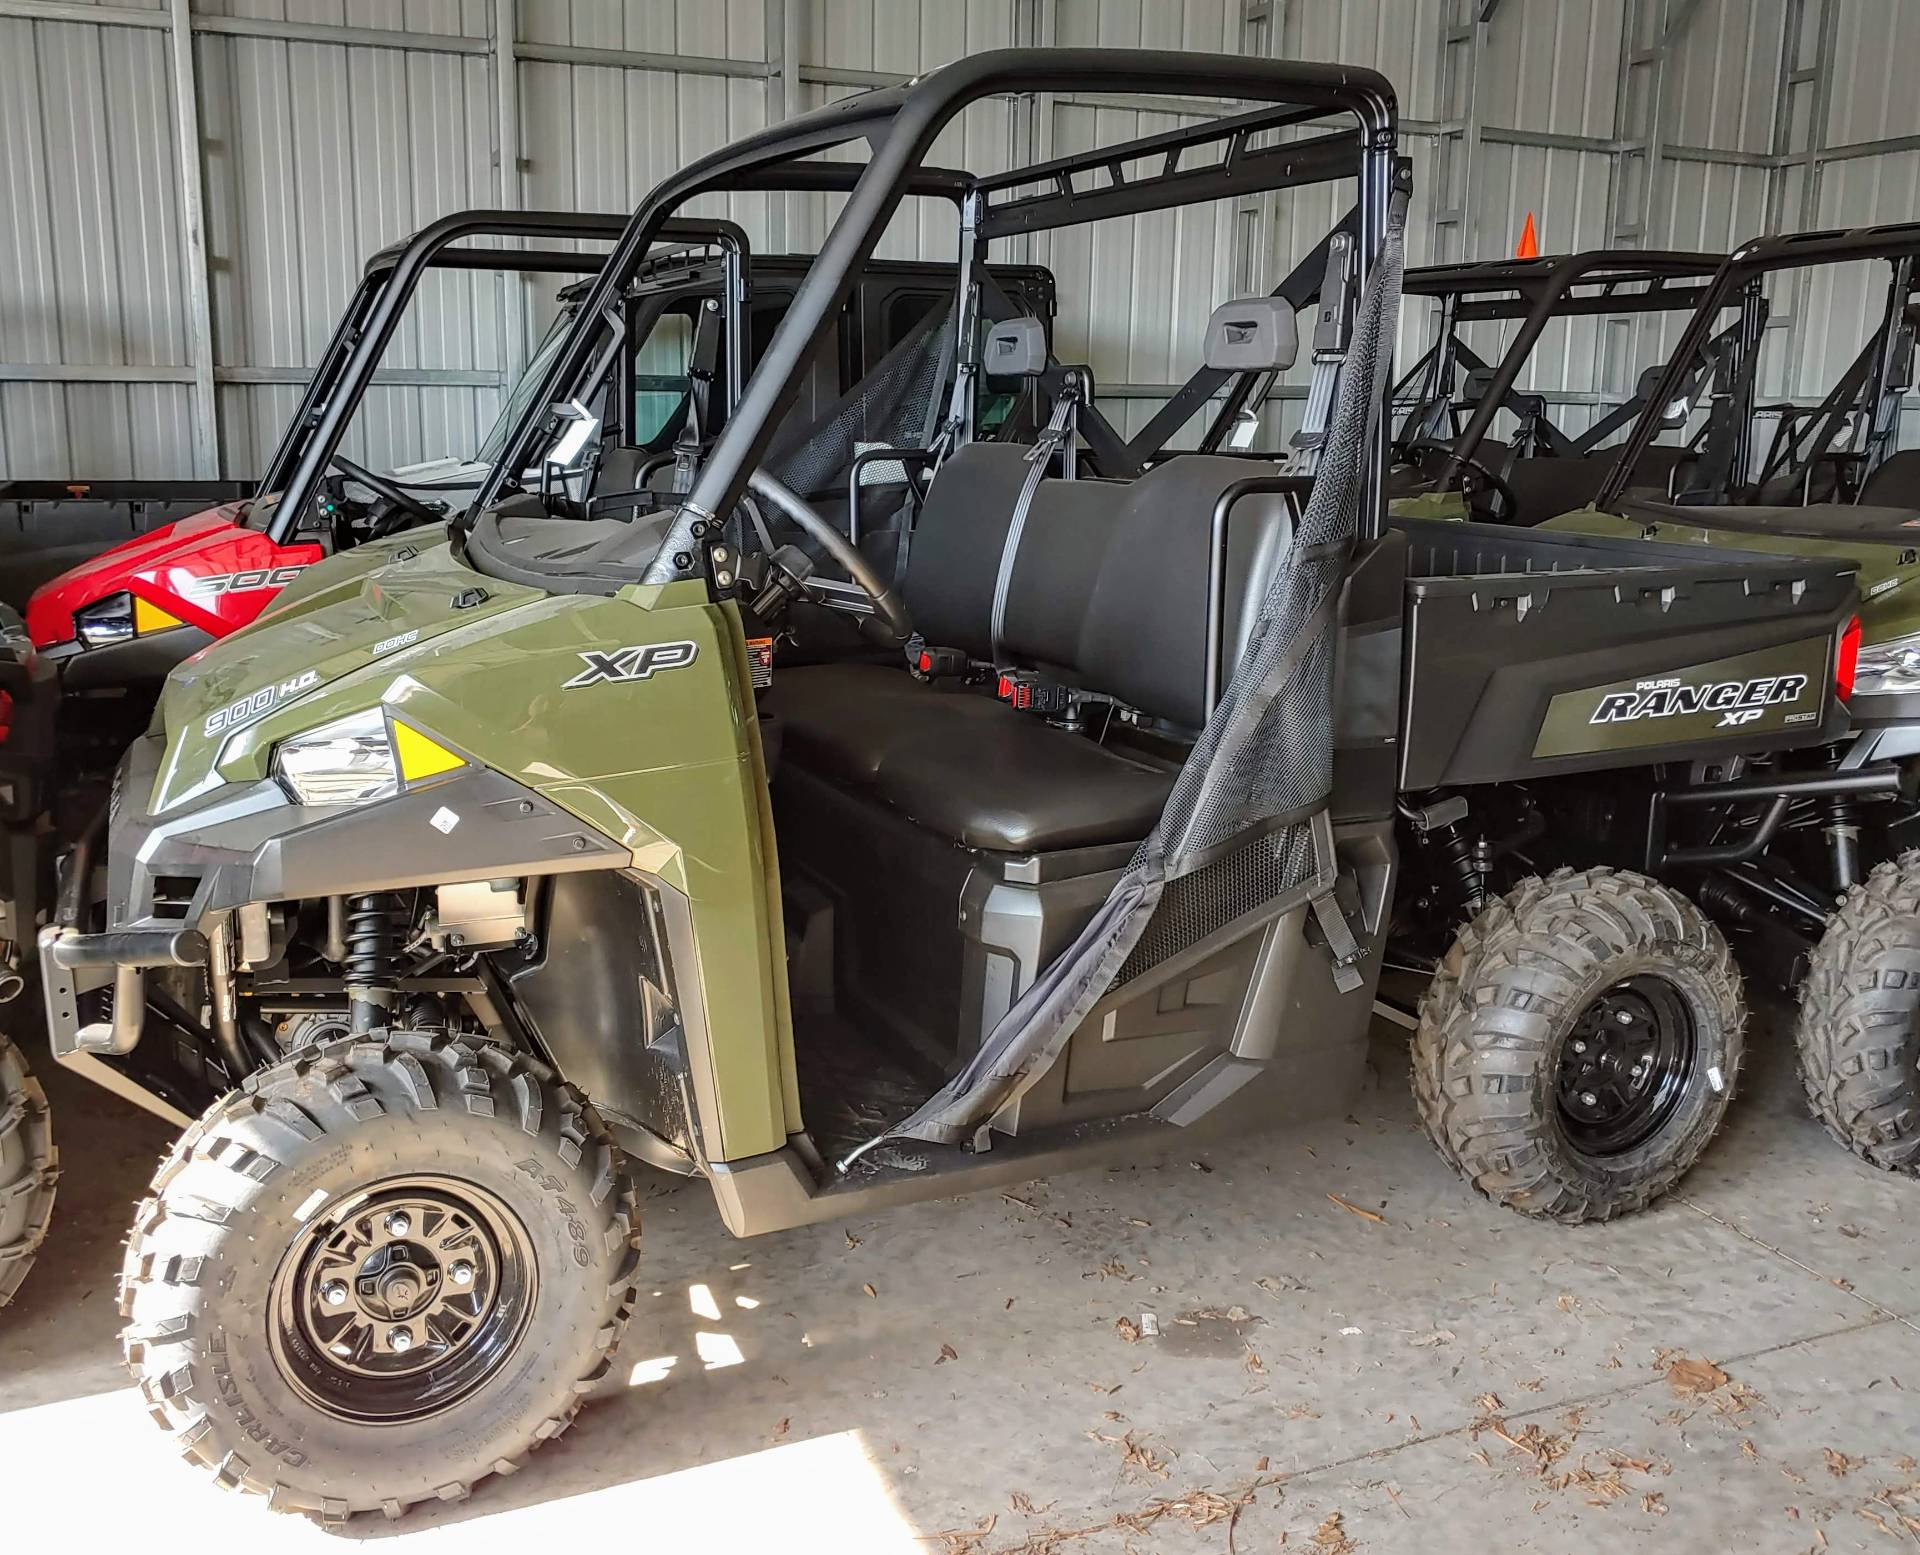 2019 Polaris Ranger XP 900 in Statesville, North Carolina - Photo 1